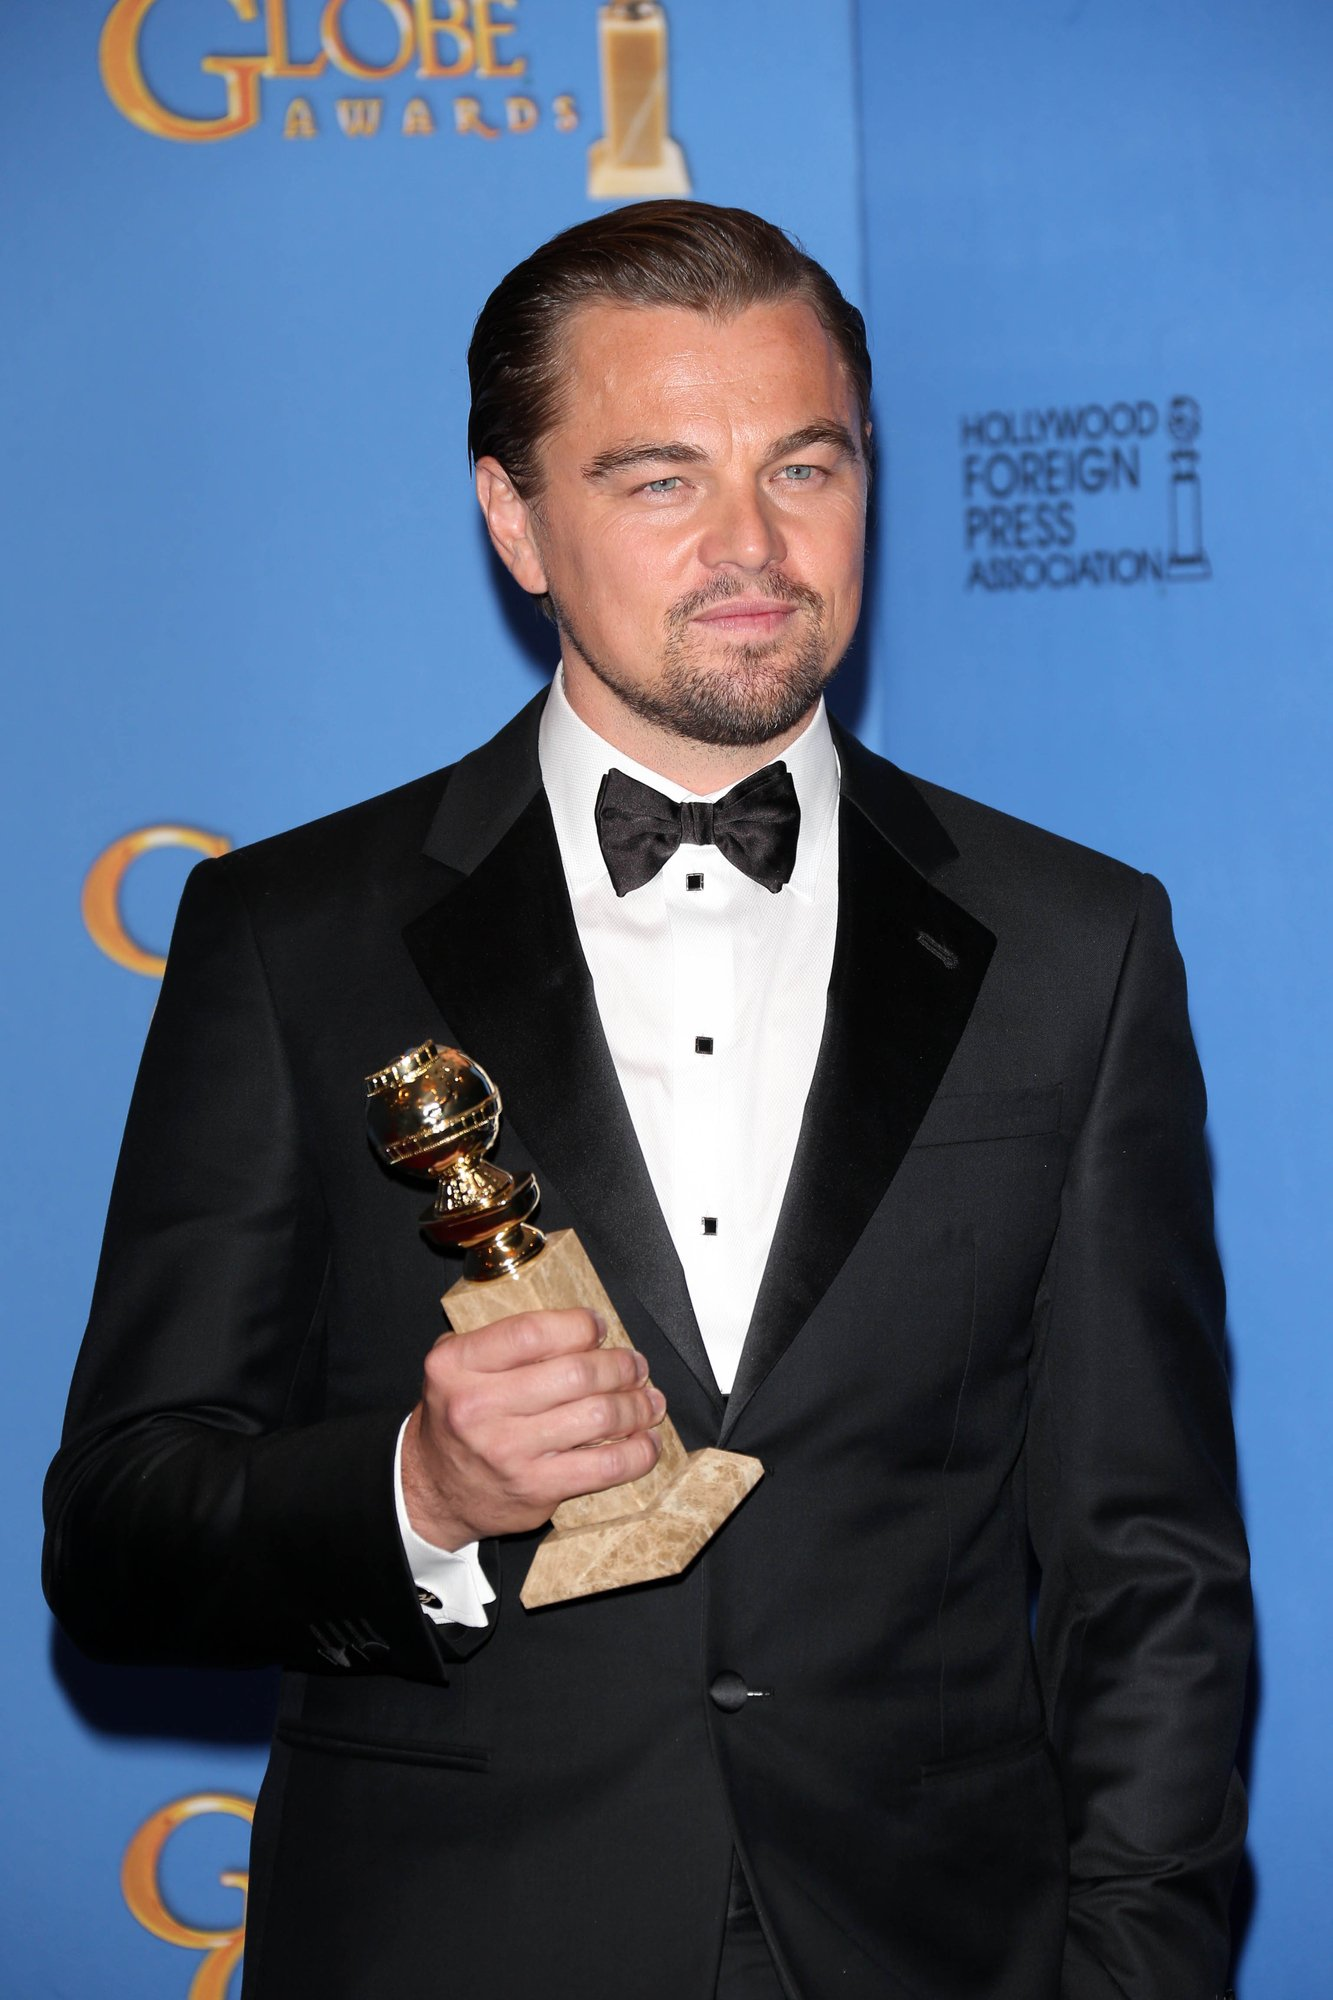 DiCaprio with award